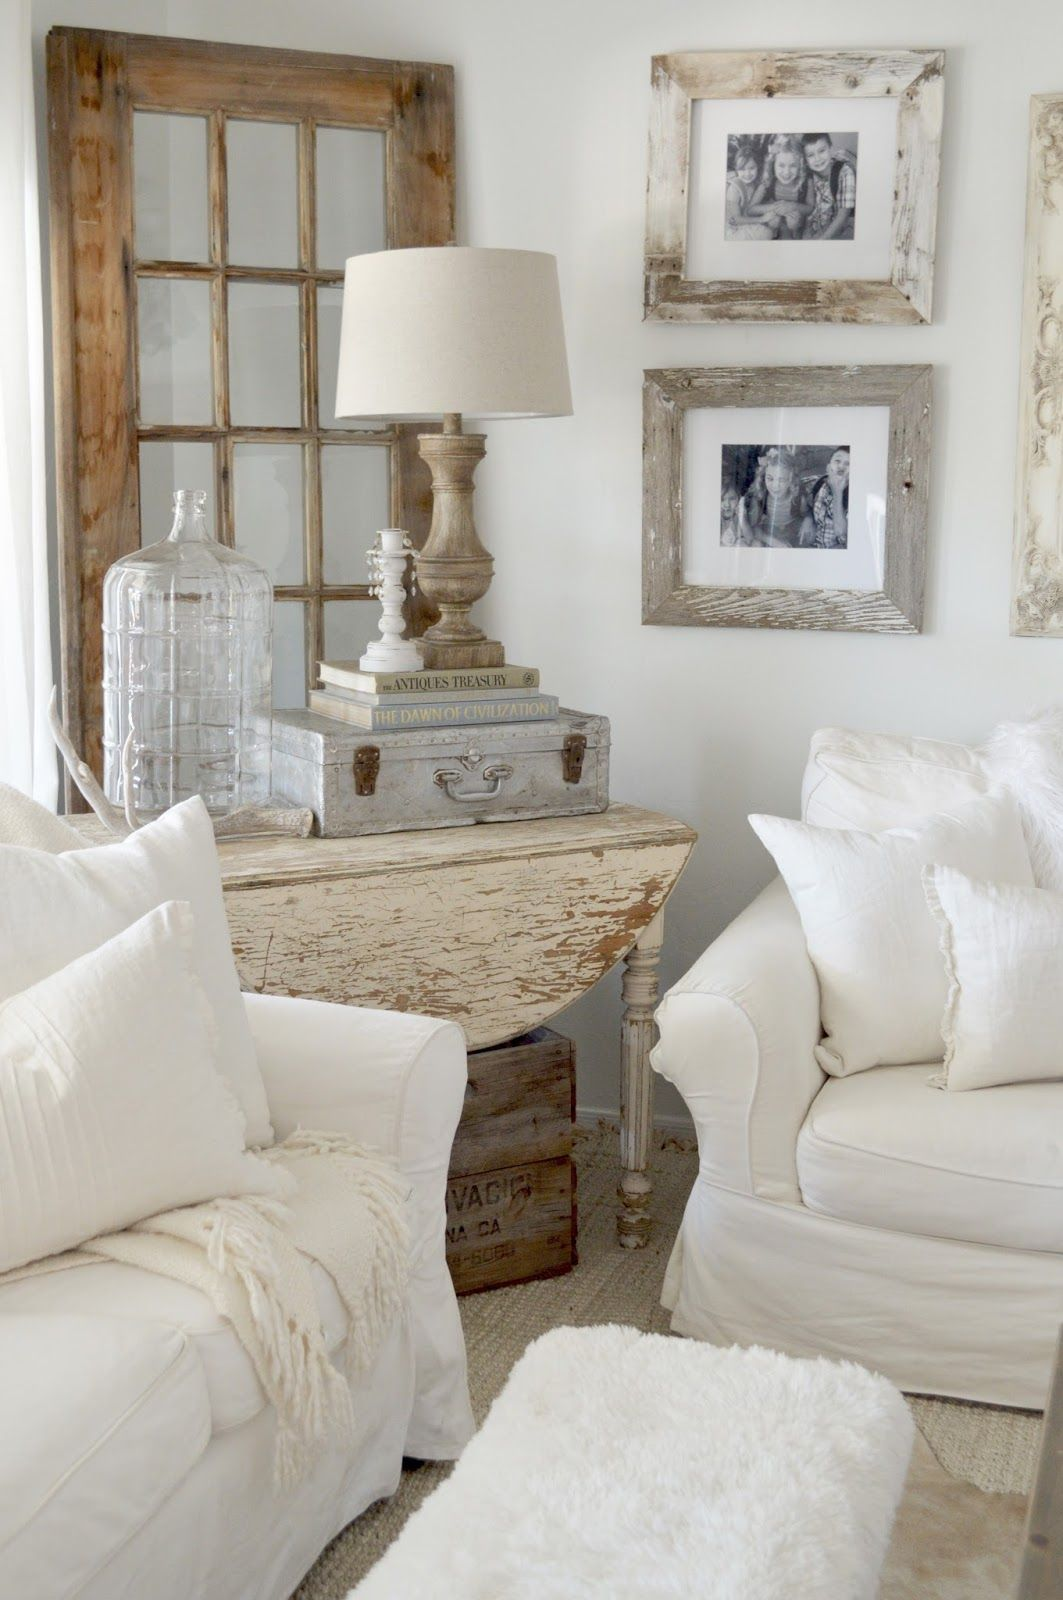 Beautiful A Blog About Farmhouse Style Country Home A Blog About Farmhouse Style Country Home Decorating Country Living Home Decorating Ideas Country Home Living Room Decorating Ideas